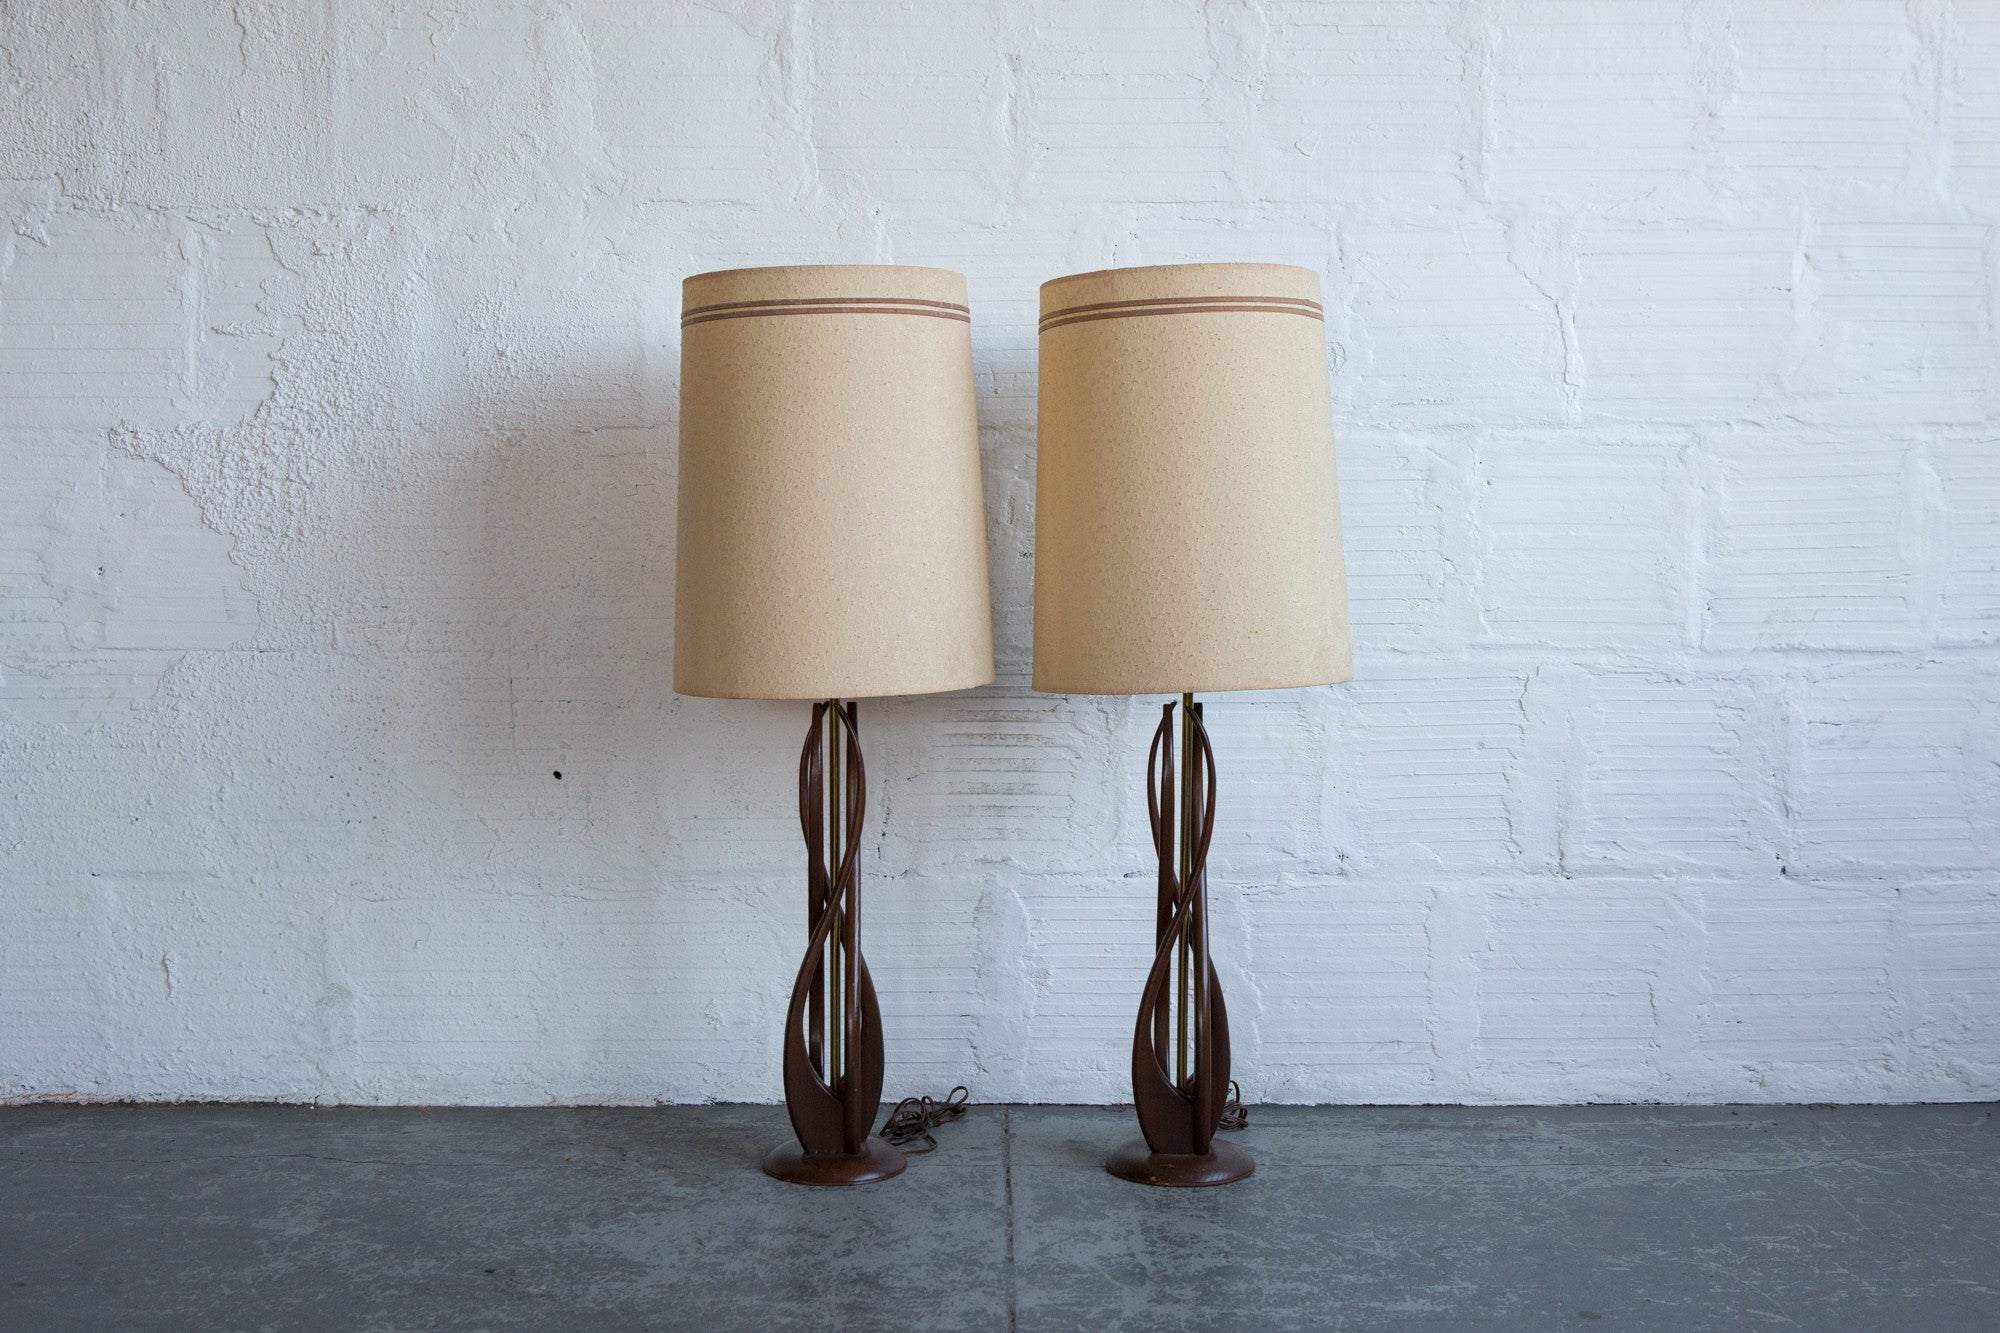 Mcm carved wood table lamp set of 2 the good mod mcm carved wood table lamp set of 2 mozeypictures